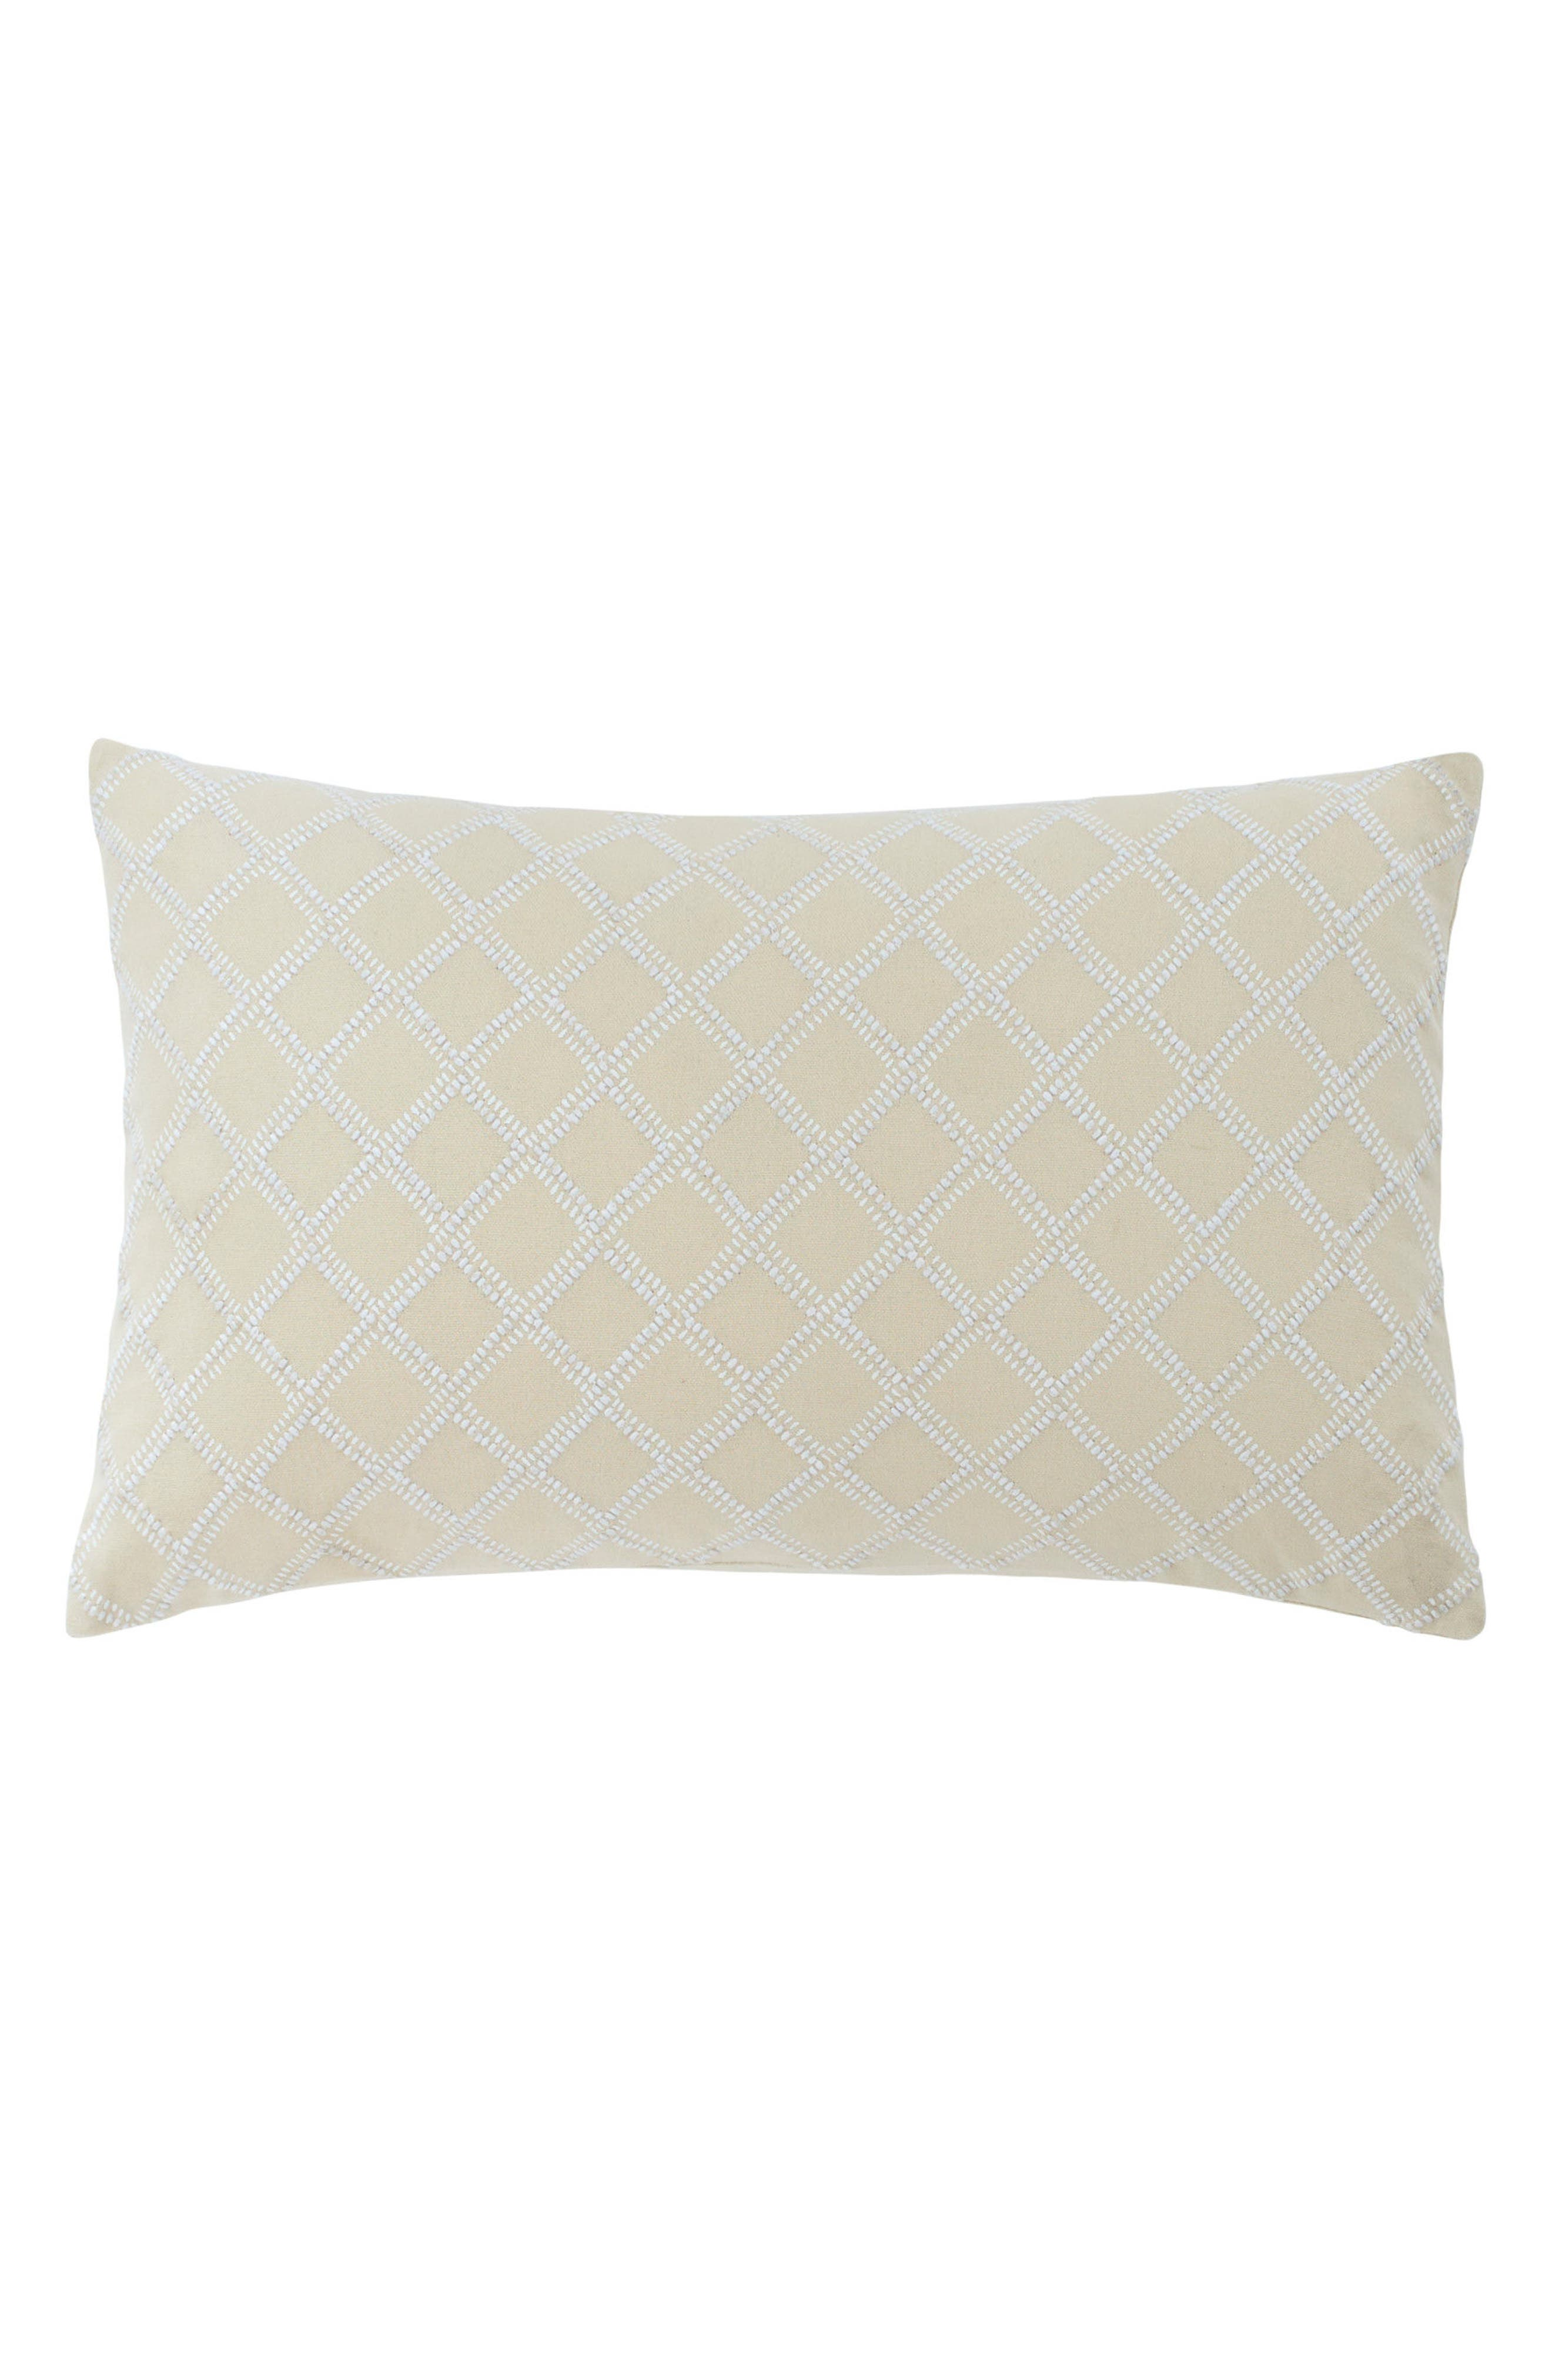 Southern Tie Southern Hospitality Trellis Accent Pillow,                         Main,                         color, 250